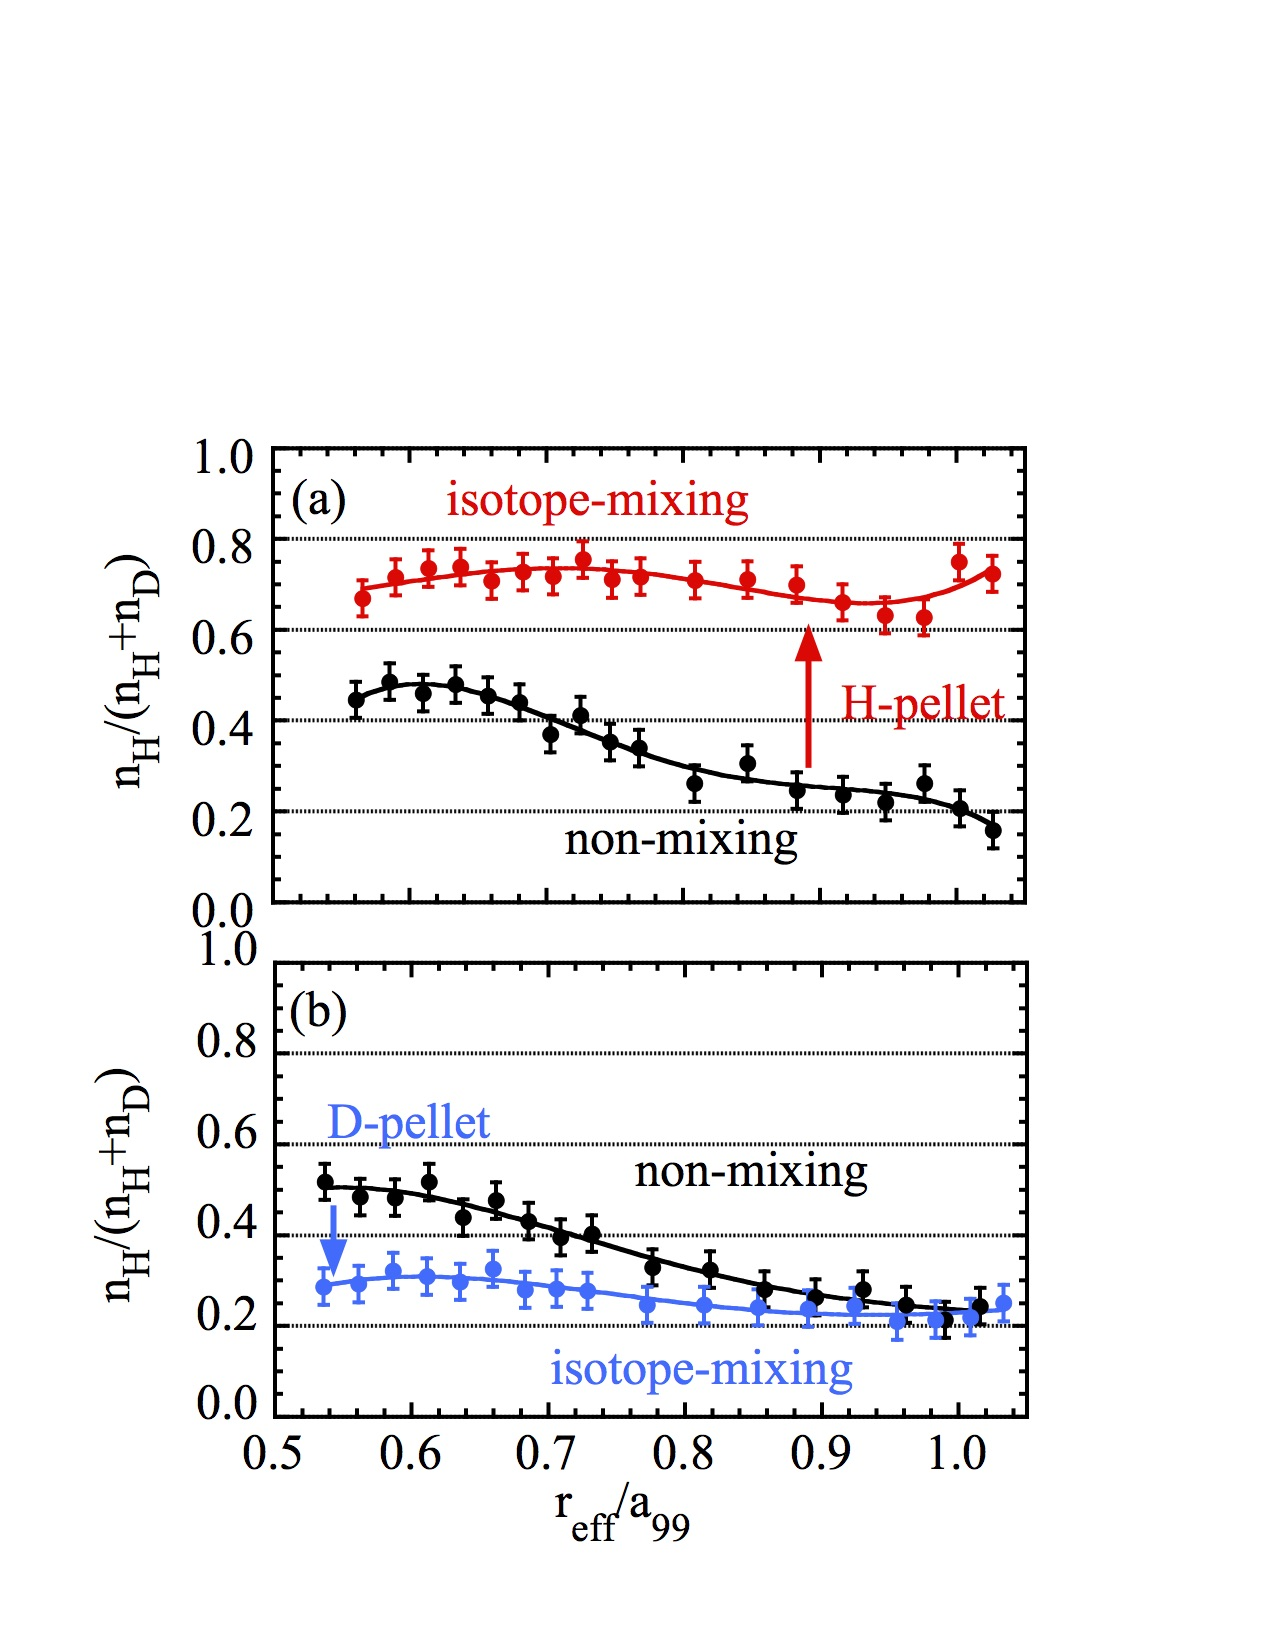 Radial profiles of hydrogen isotope fraction, $n_H/(n_H+n_D)$ before and after the (a) H-pellet and (b) D-pellet.